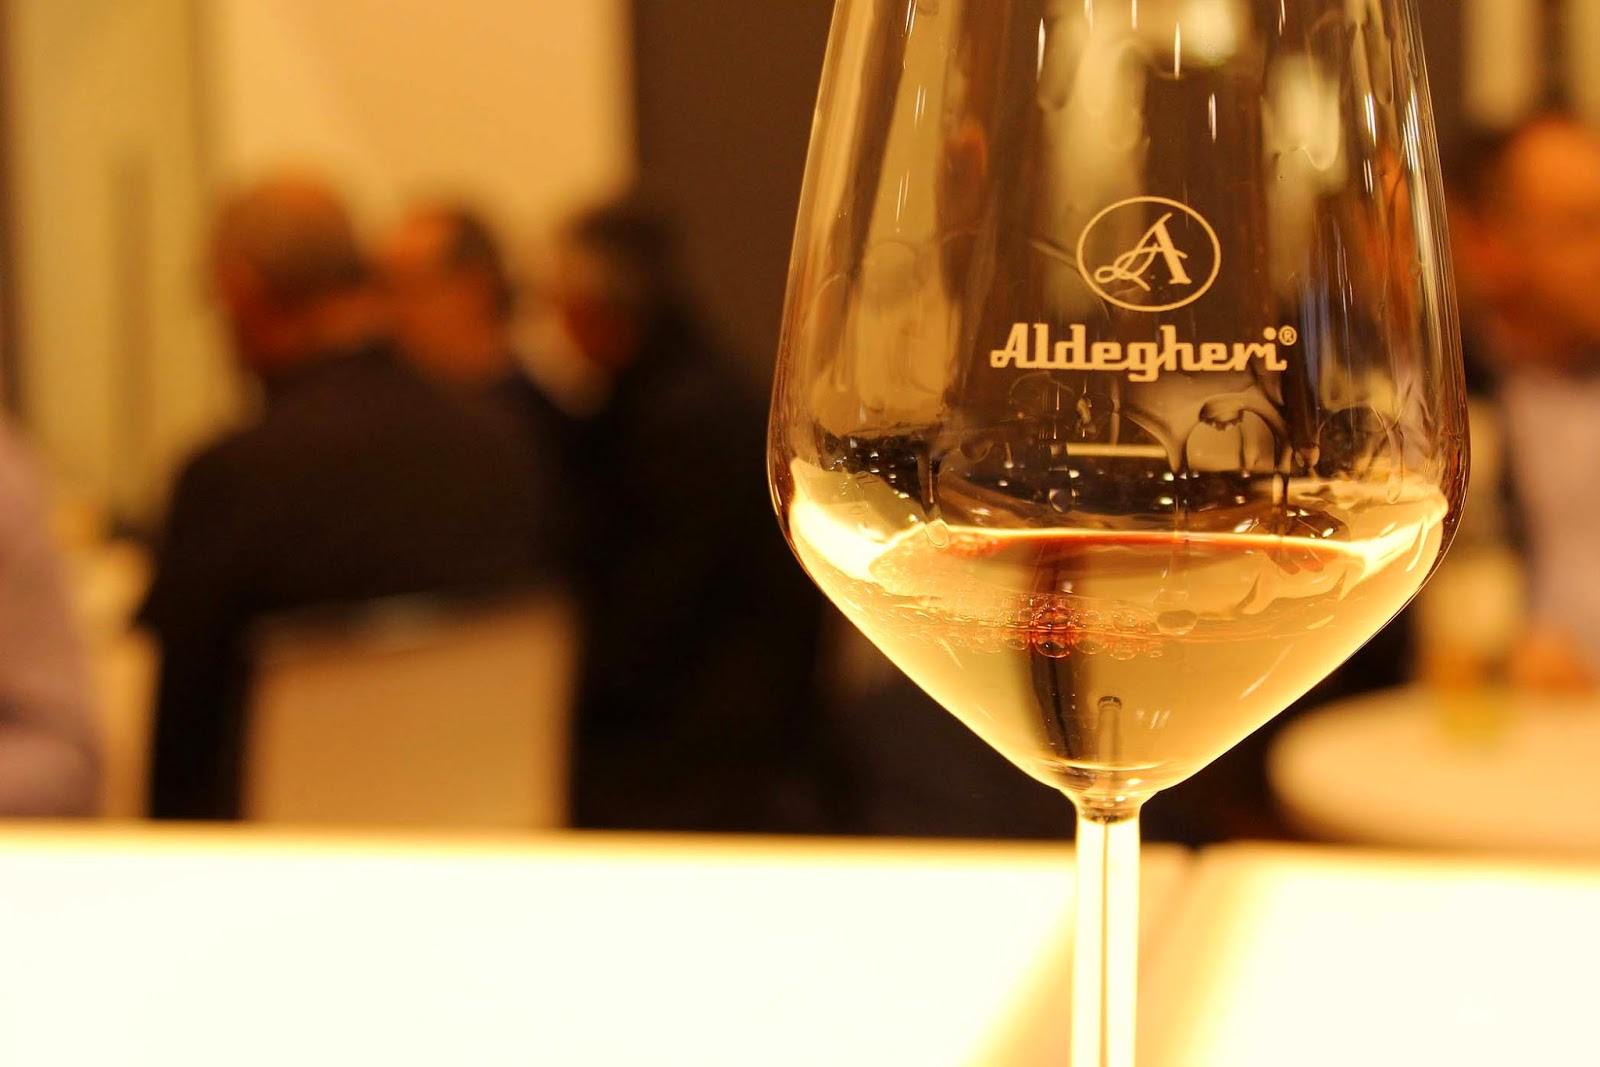 Eniwhere Fashion - Vinitaly 2015 - Aldegheri